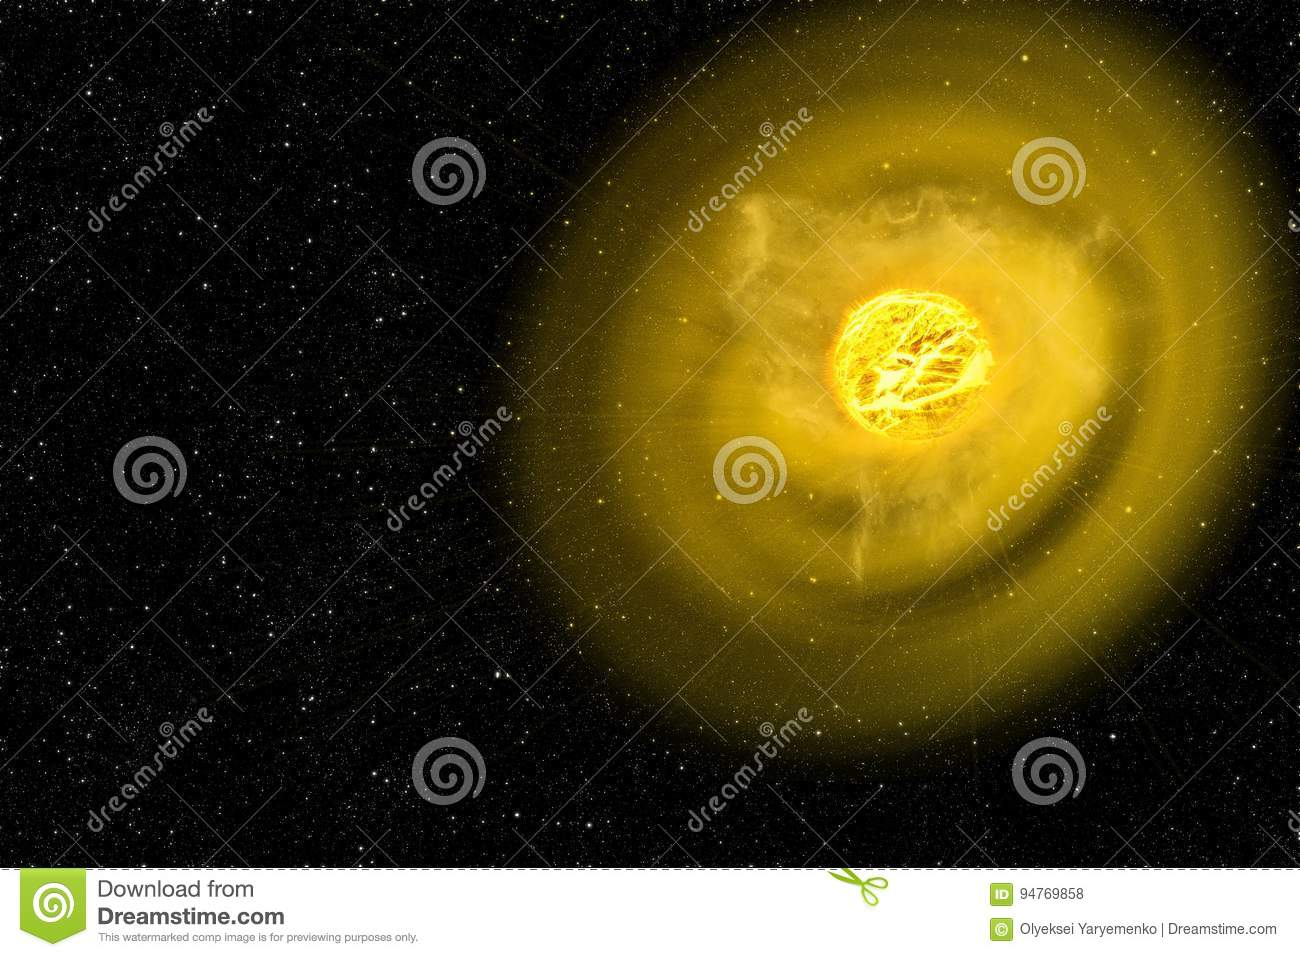 the main source of energy on Earth . solar winds